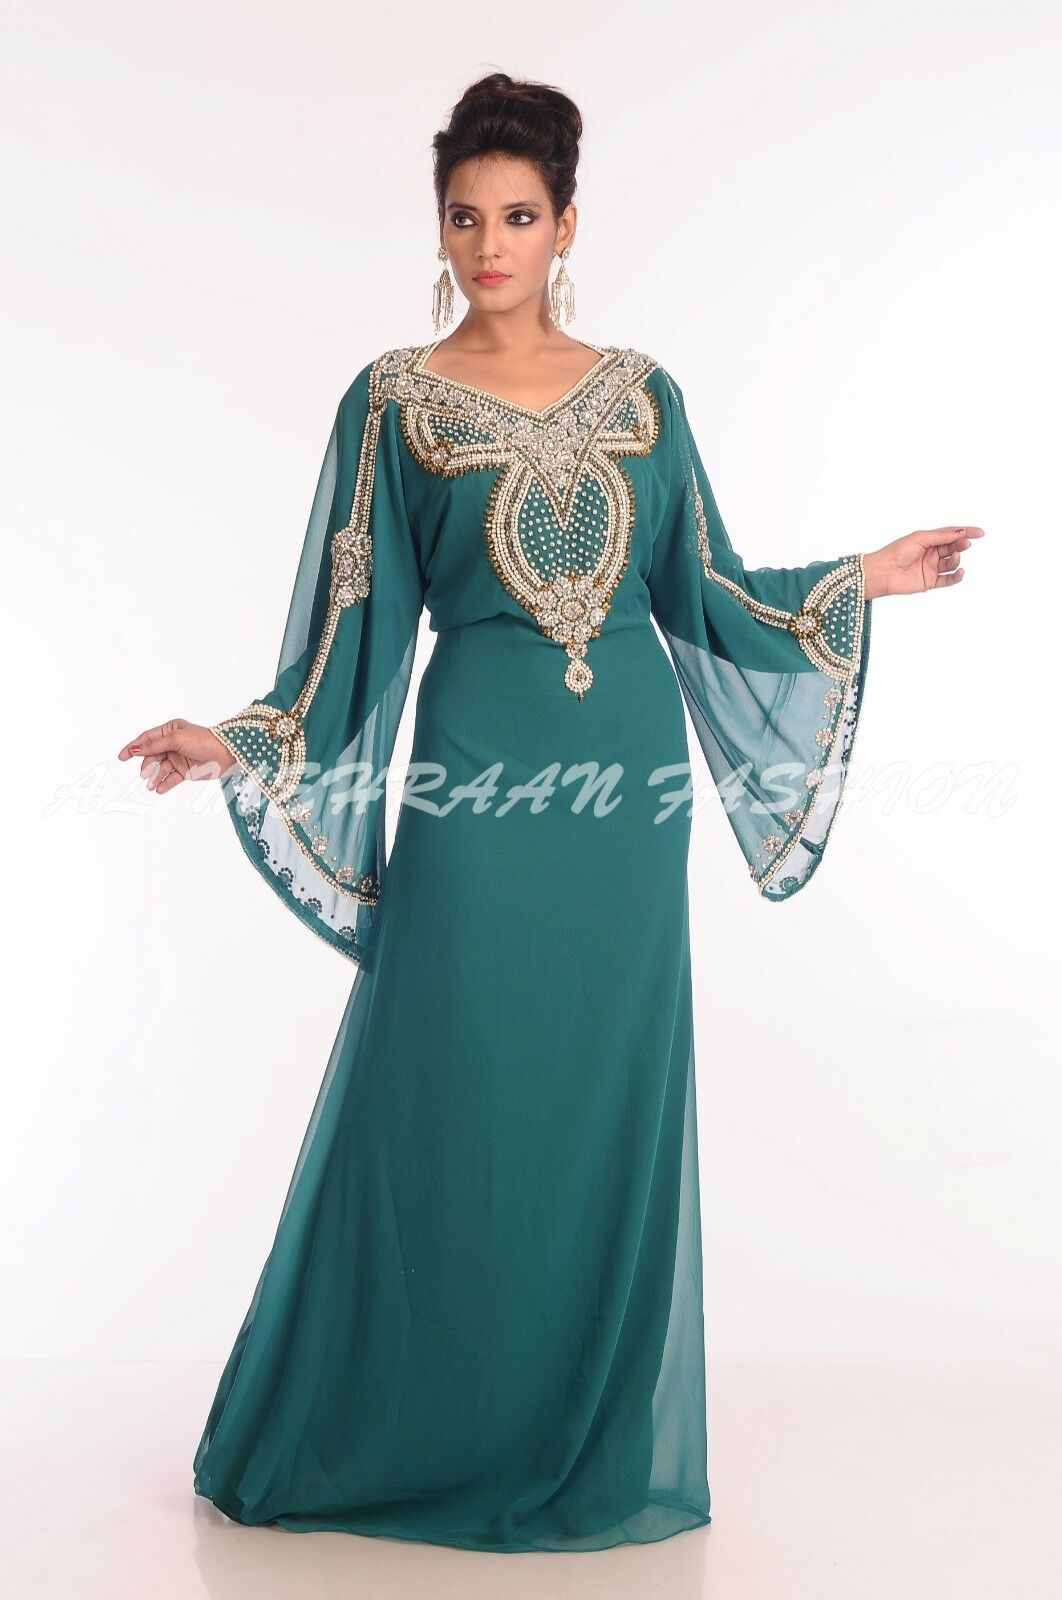 Dubai Wedding Gown Gown Gown Royal MgoldCCAN Kaftan  Arabic WOMEN CLOTHING sequin cafbd8